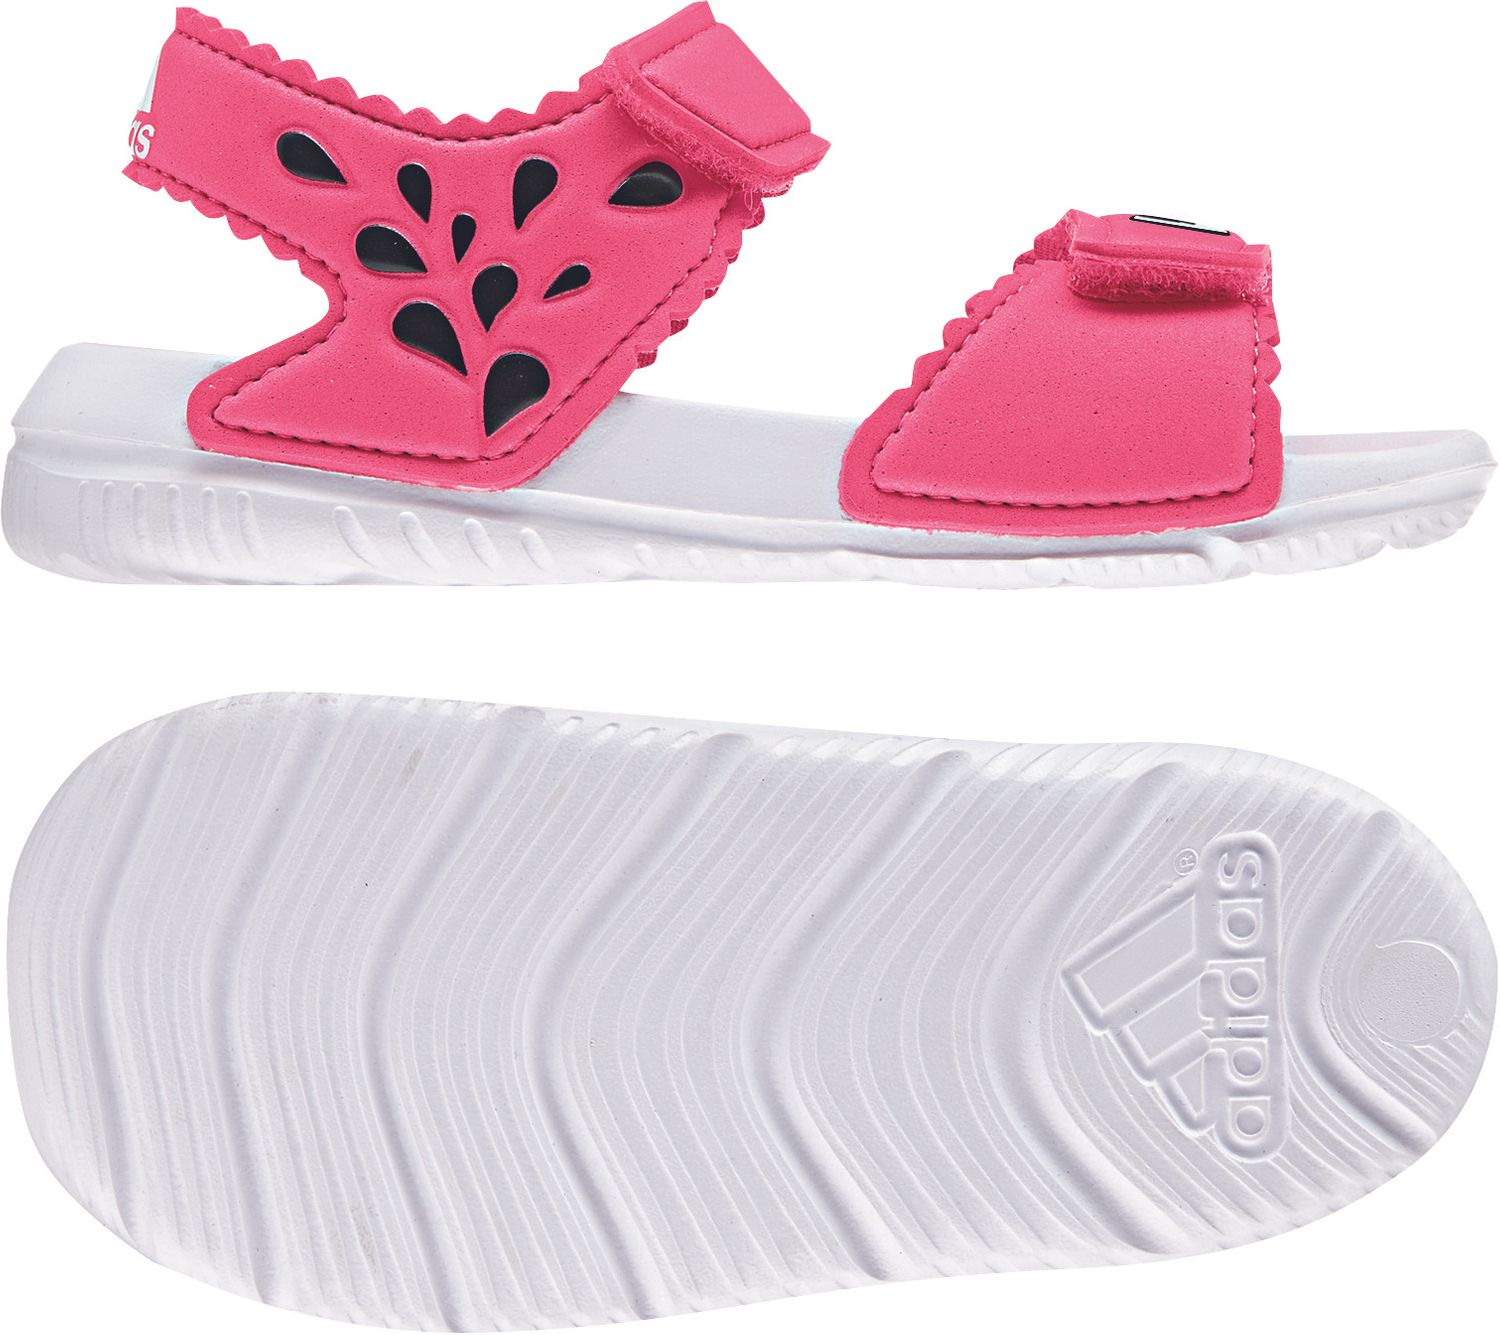 competitive price dcc32 55348 adidas kids water sandal AltaSwim I Beach sandals, water shoes CQ0050